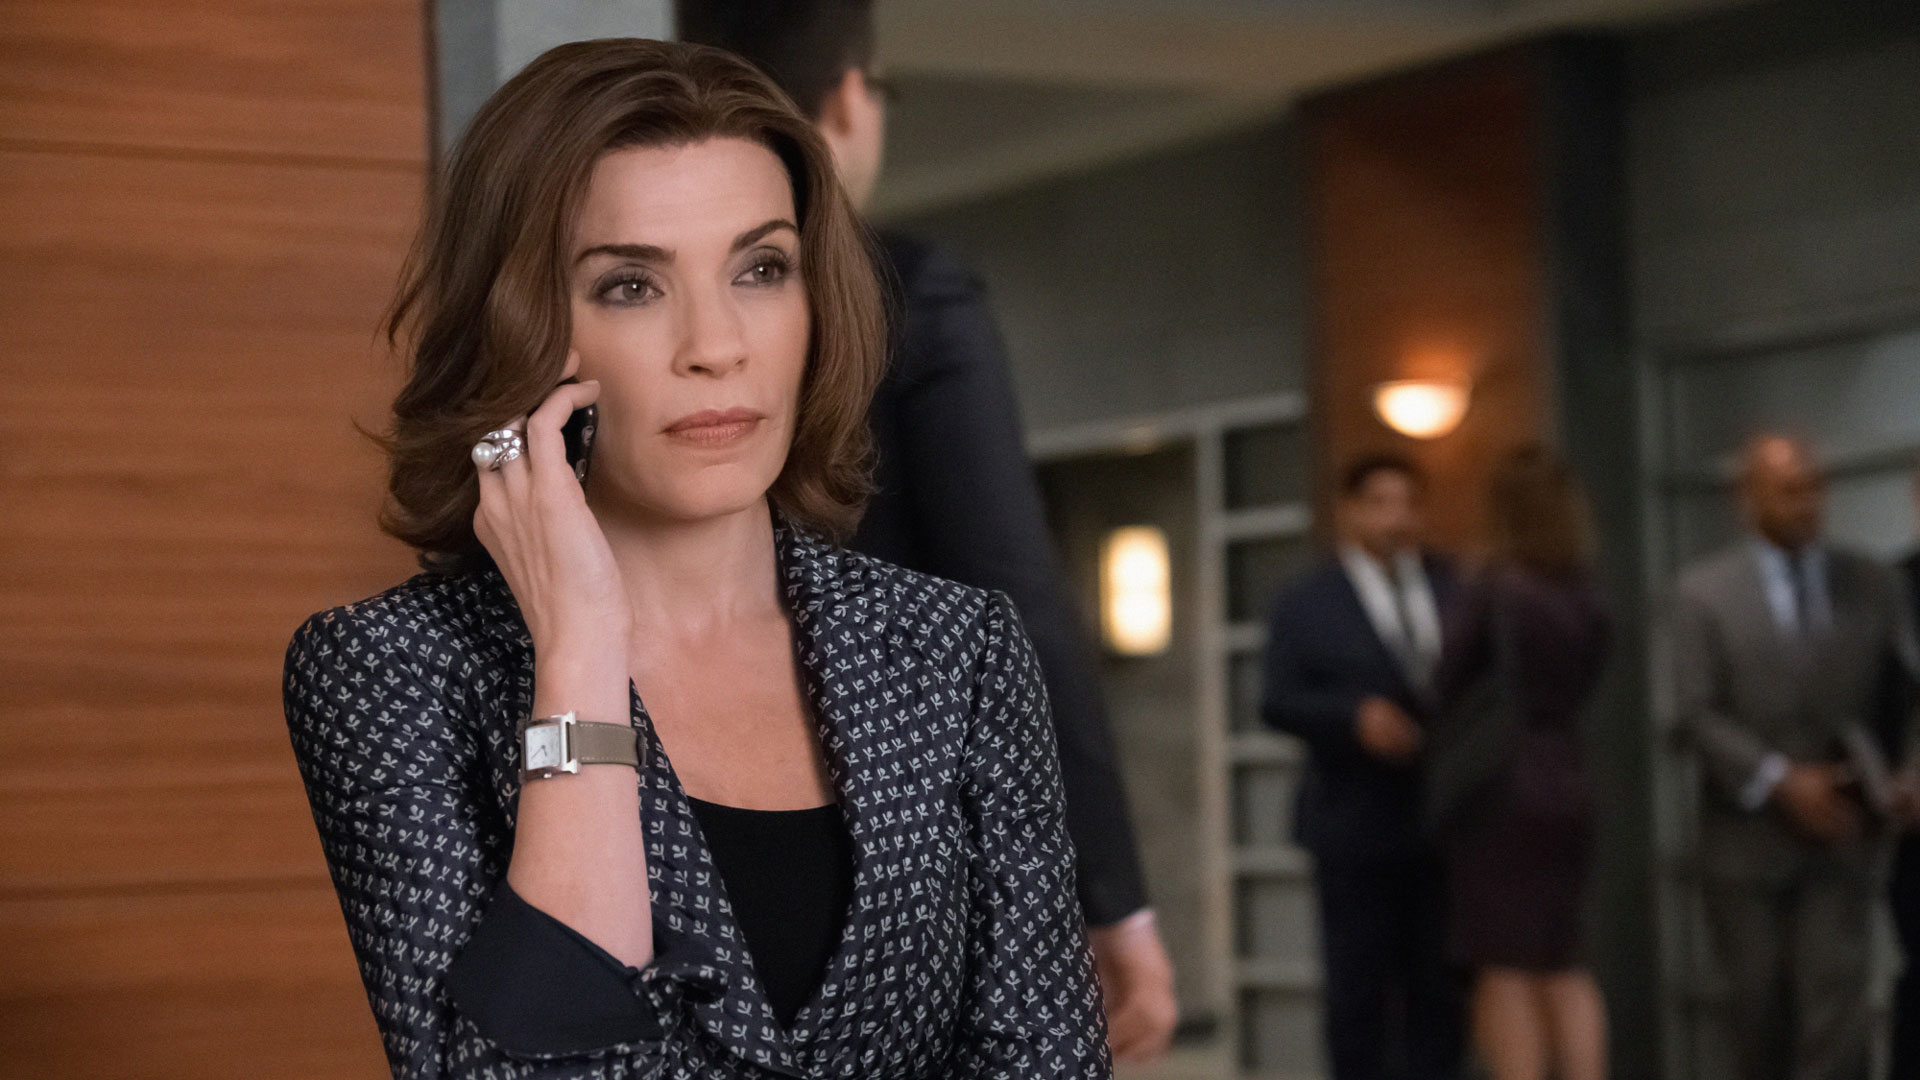 Alicia Florrick receives a call outside of court.